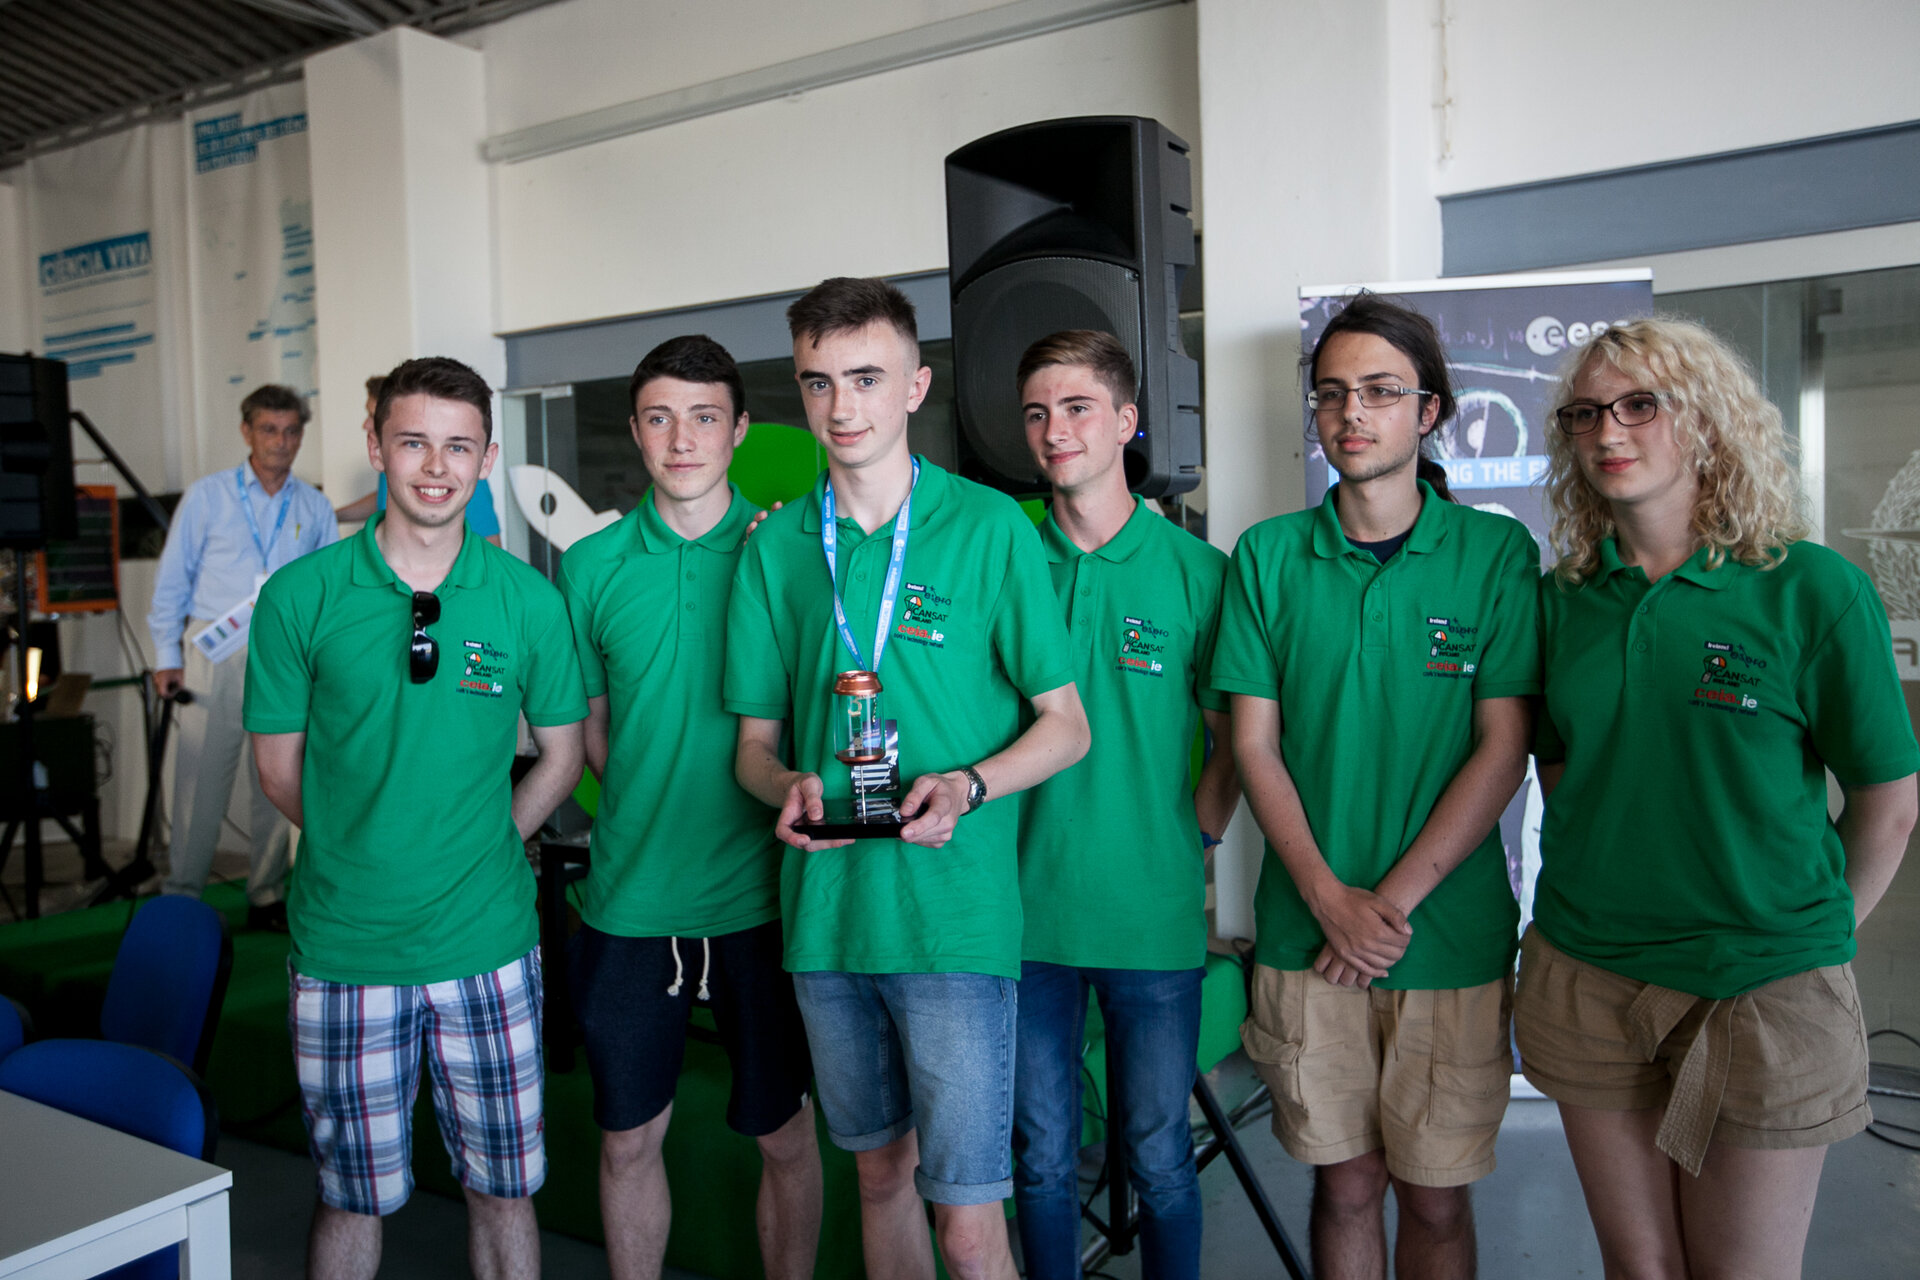 ConfeyCan team from Ireland won 3rd place